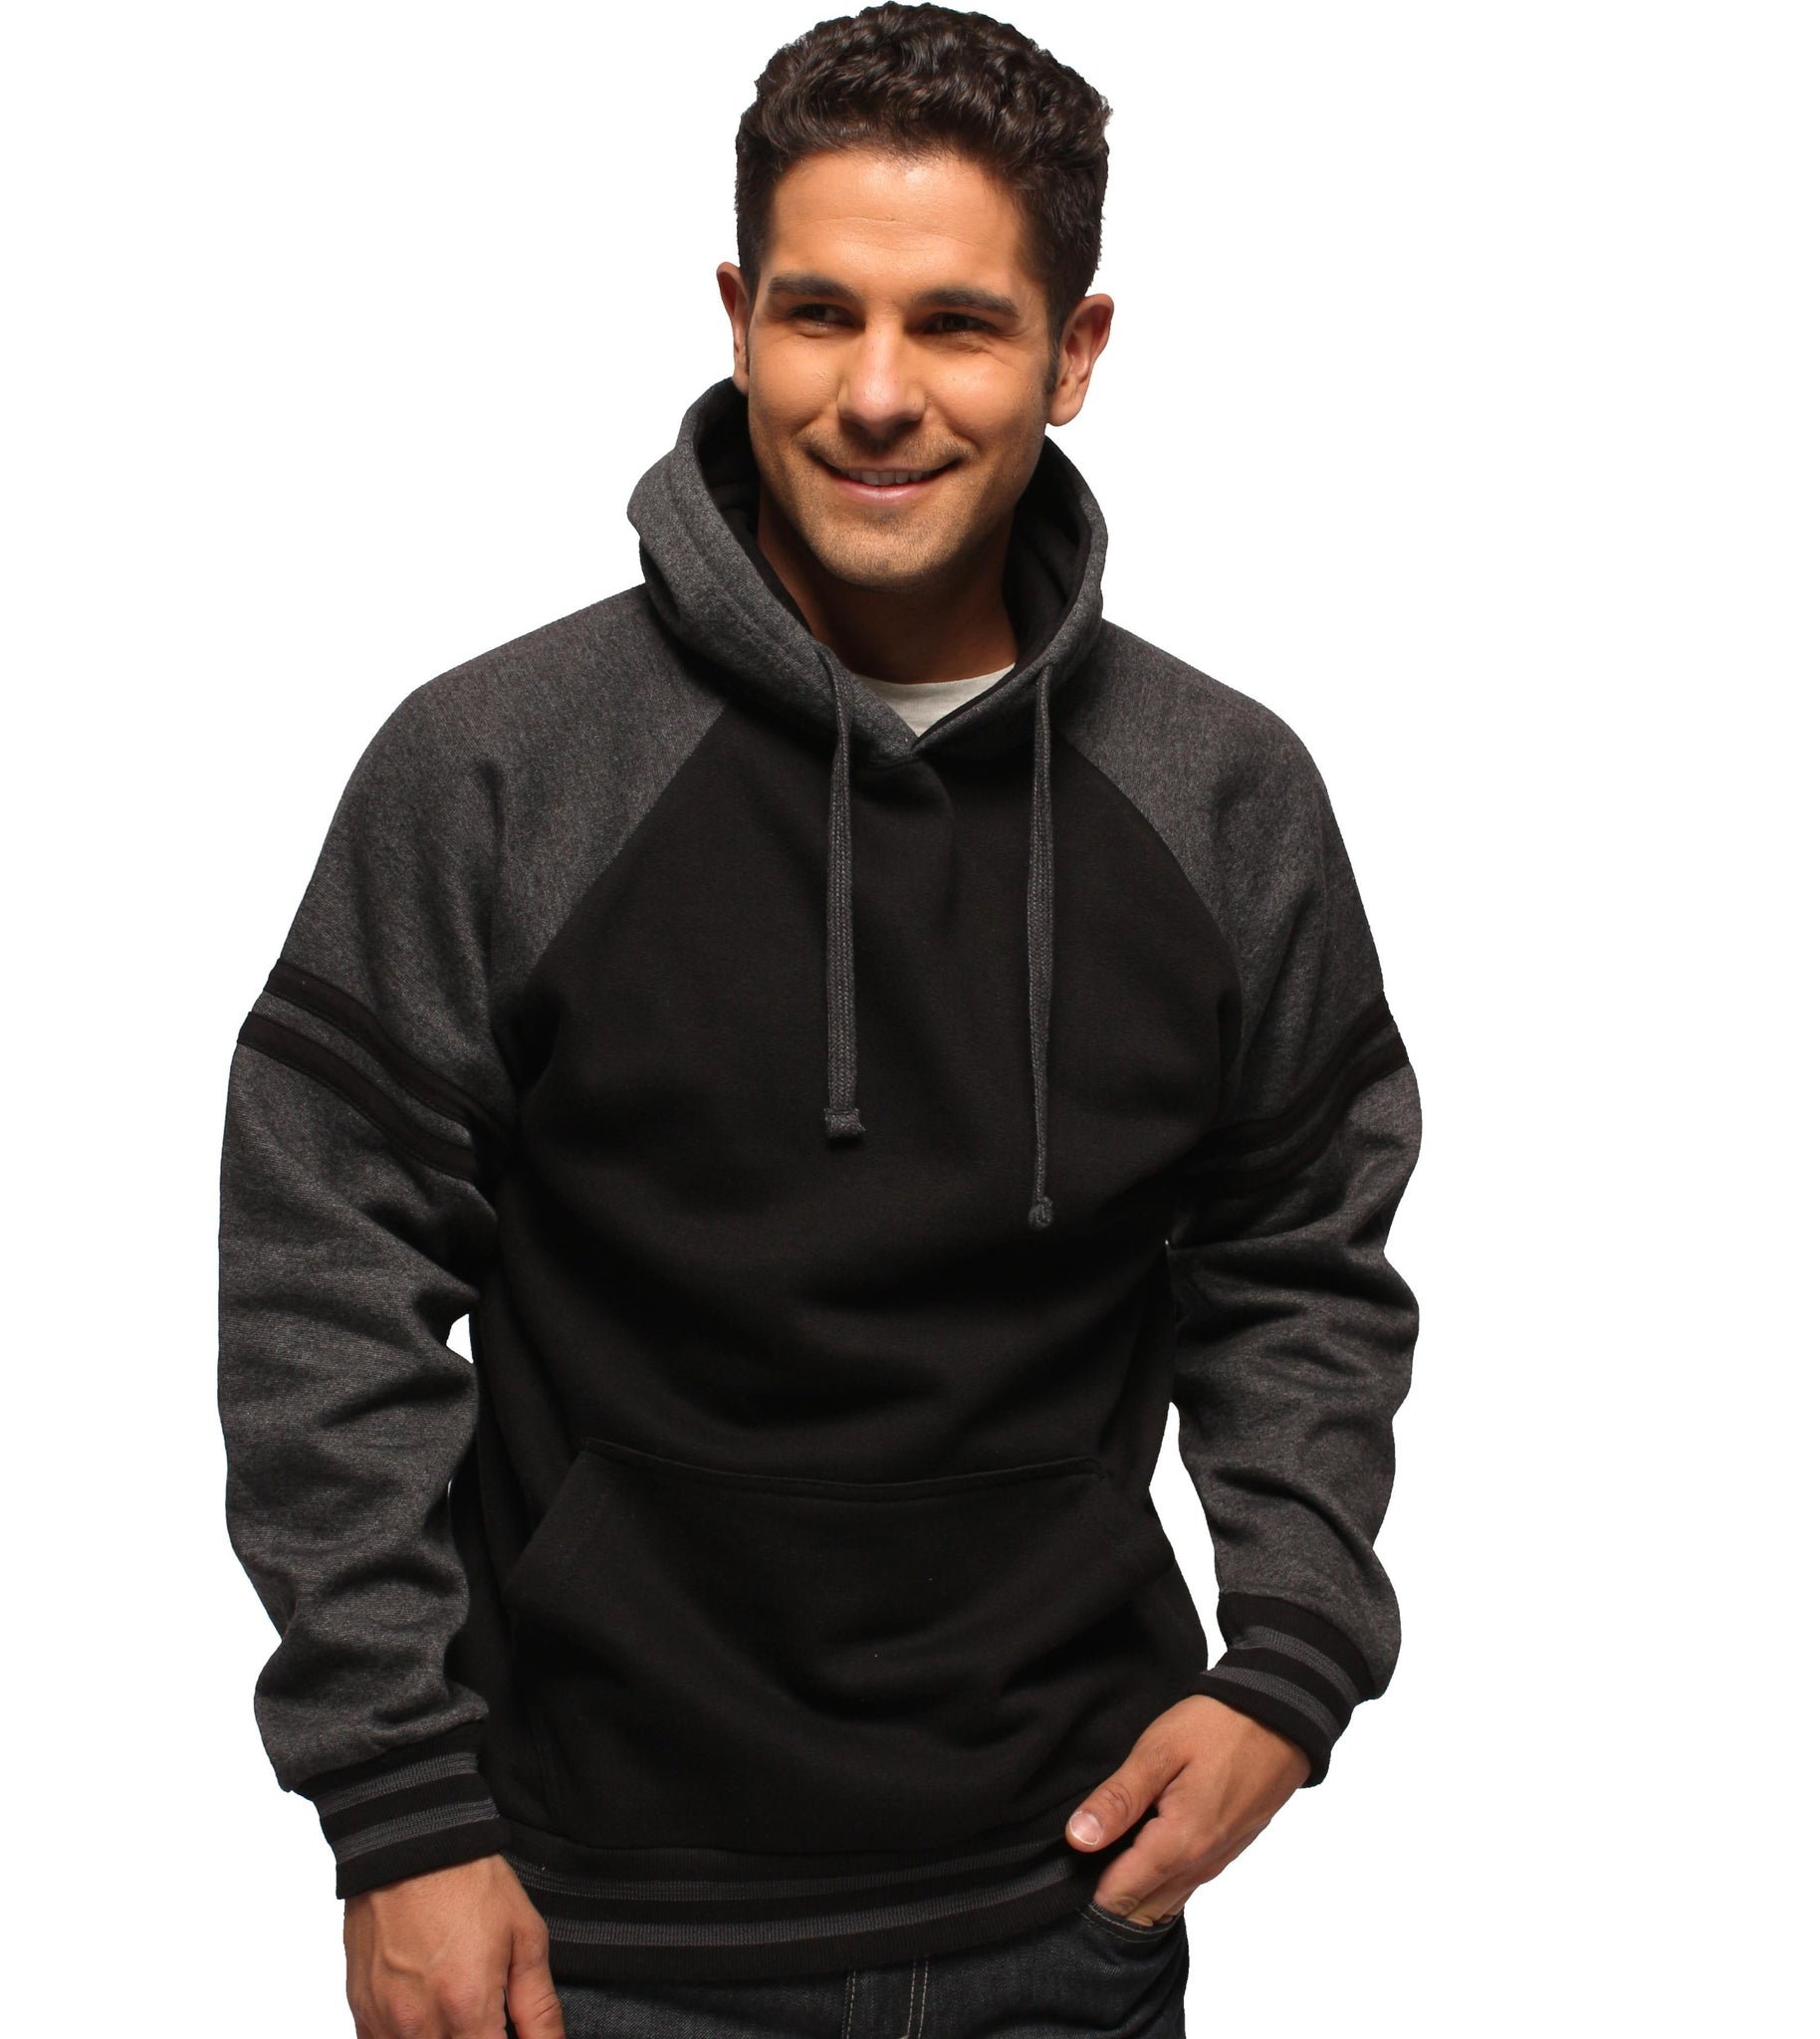 Adult Unisex Hoodie, w/Contrast Sleeve & Striped Cuff